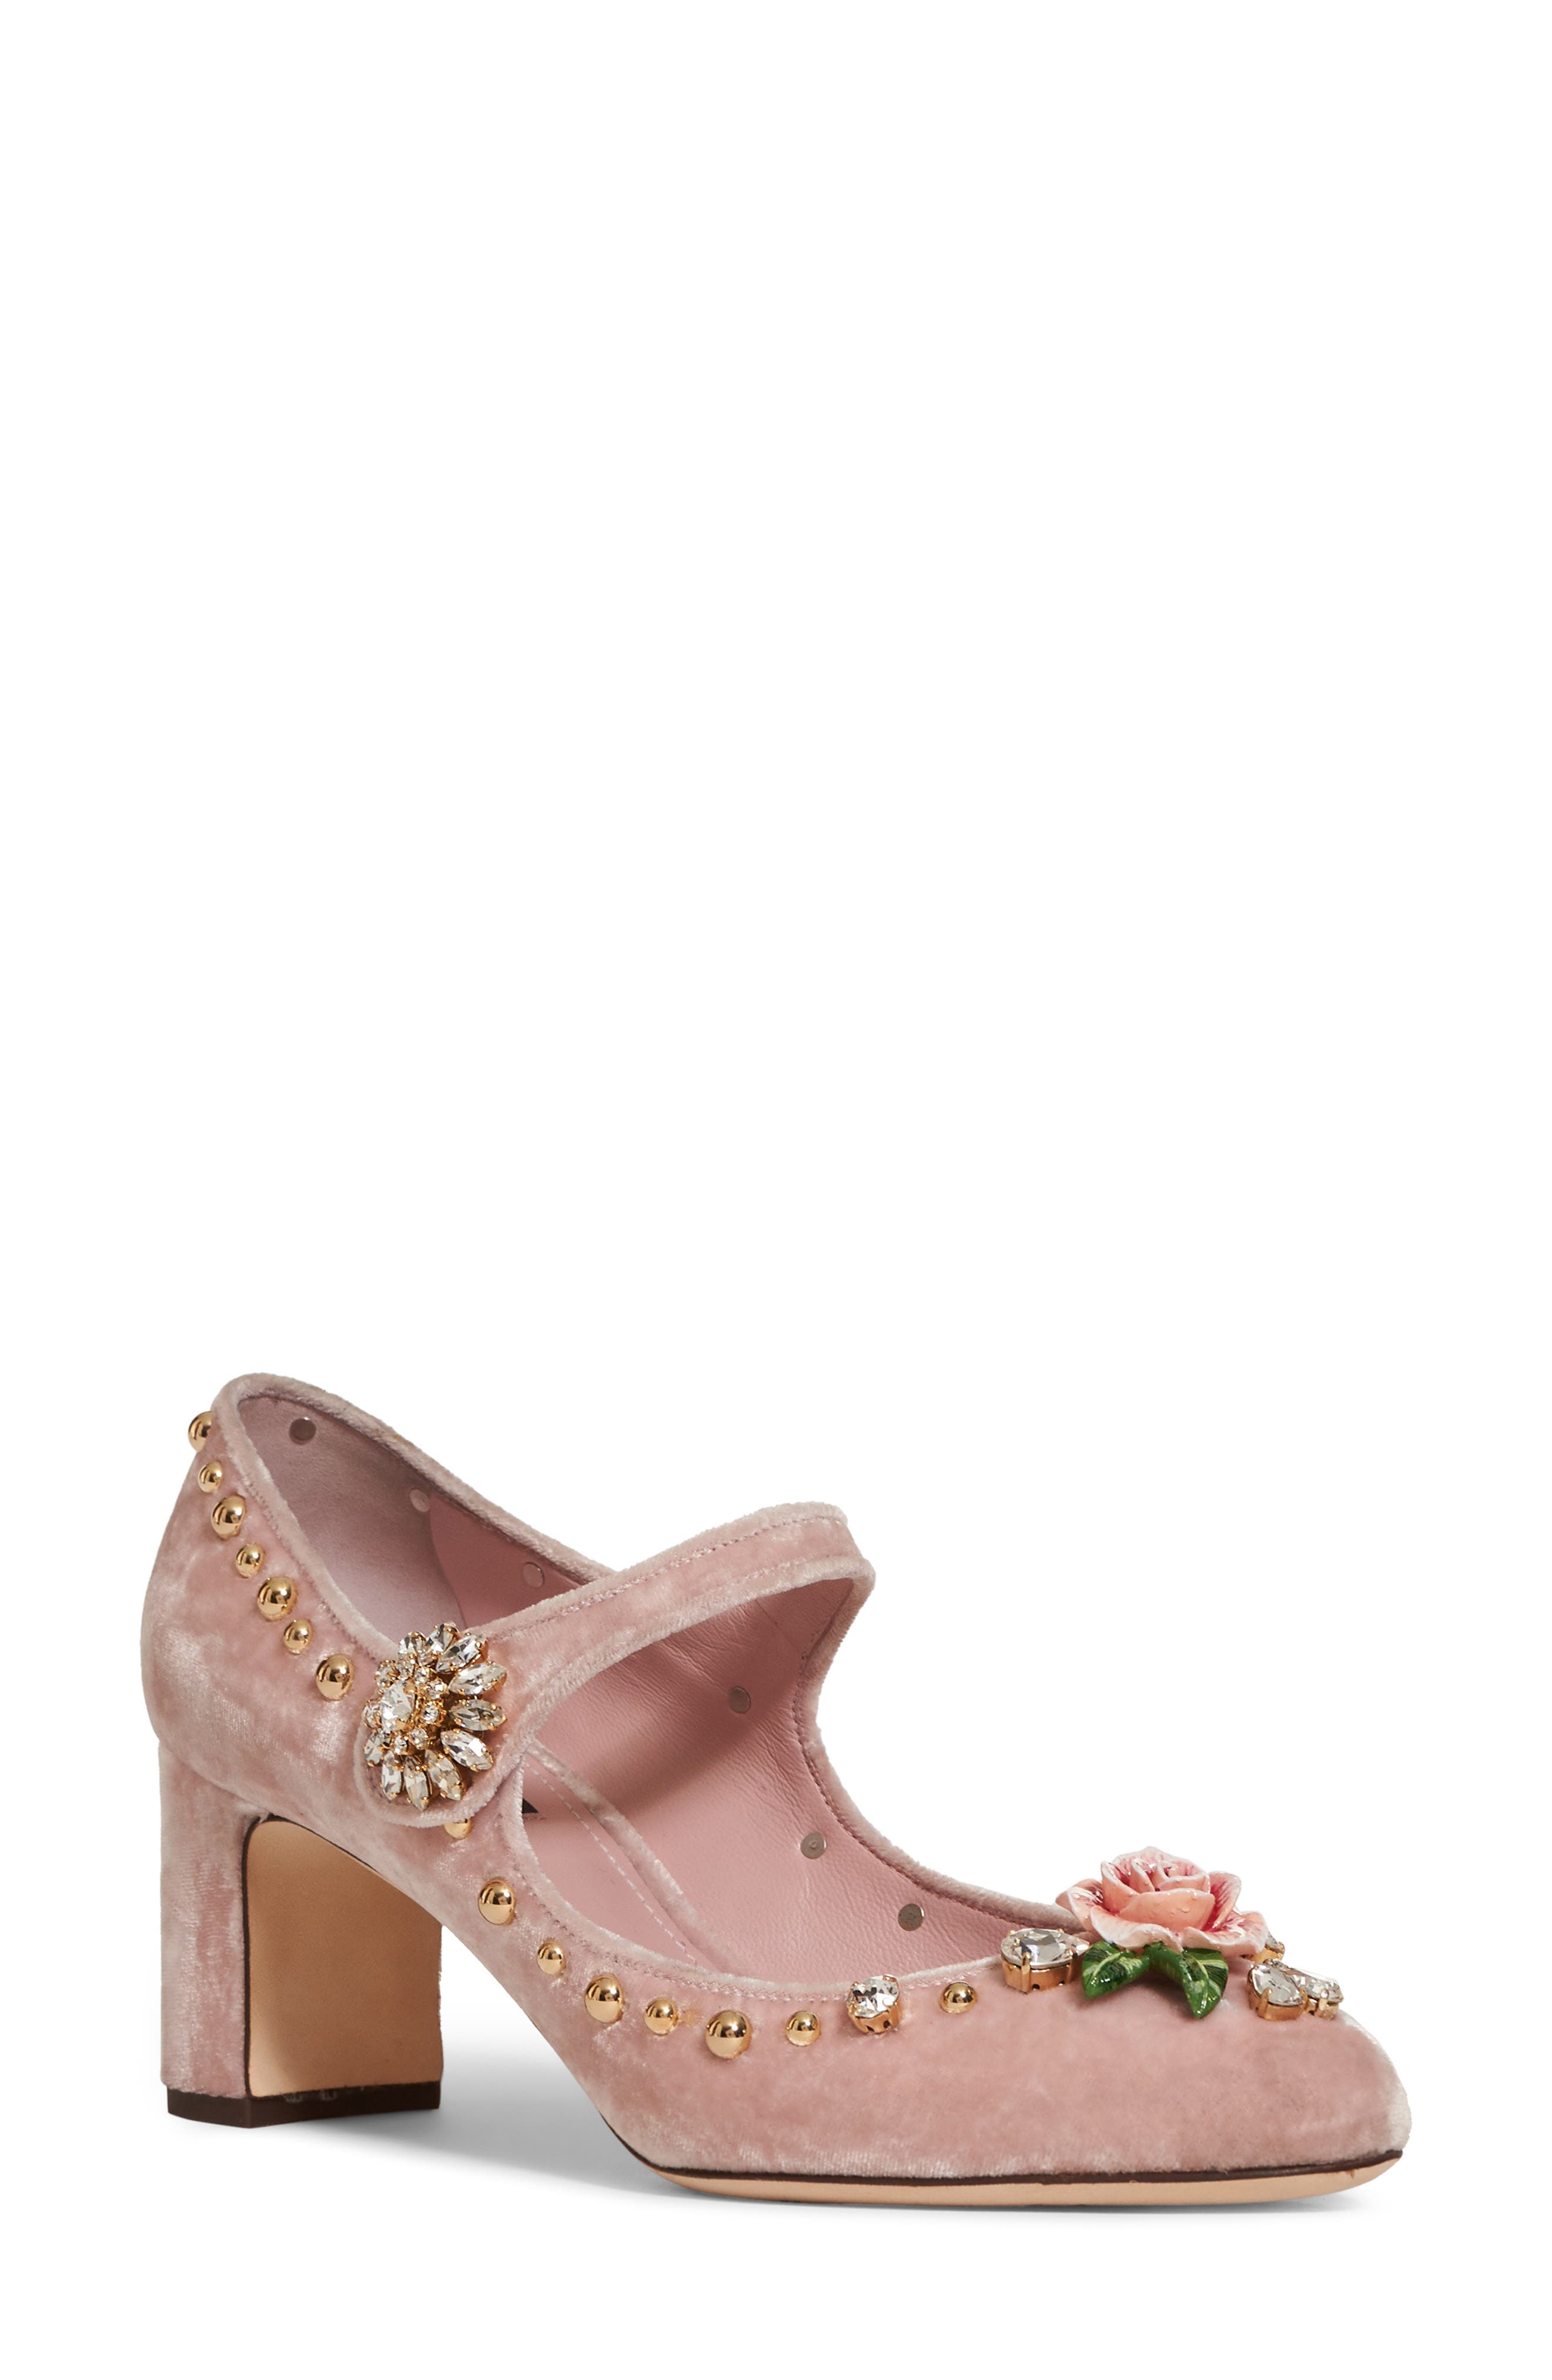 Rose Mary Jane Pump,                         Main,                         color, 690